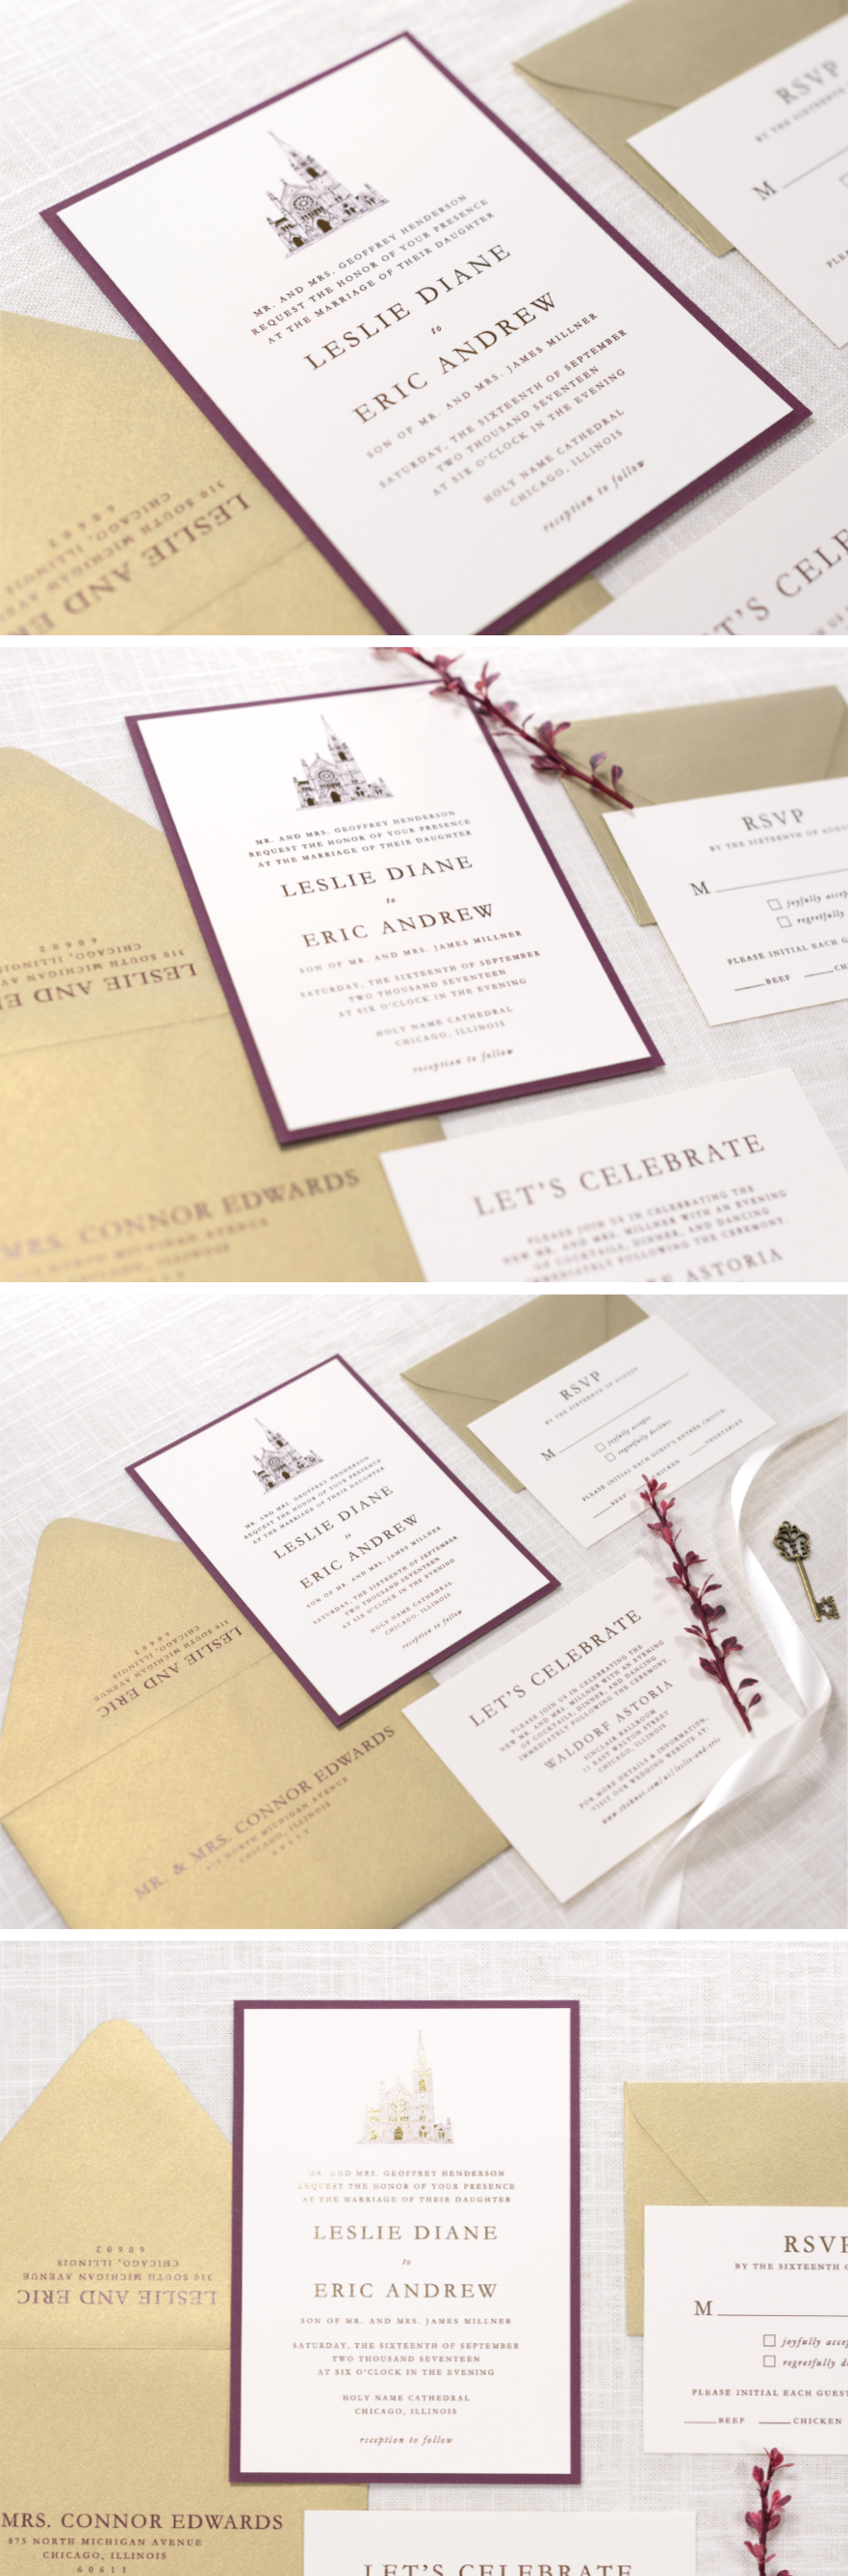 Ivory Gold And Burgundy Wine Wedding Invitation With Foil